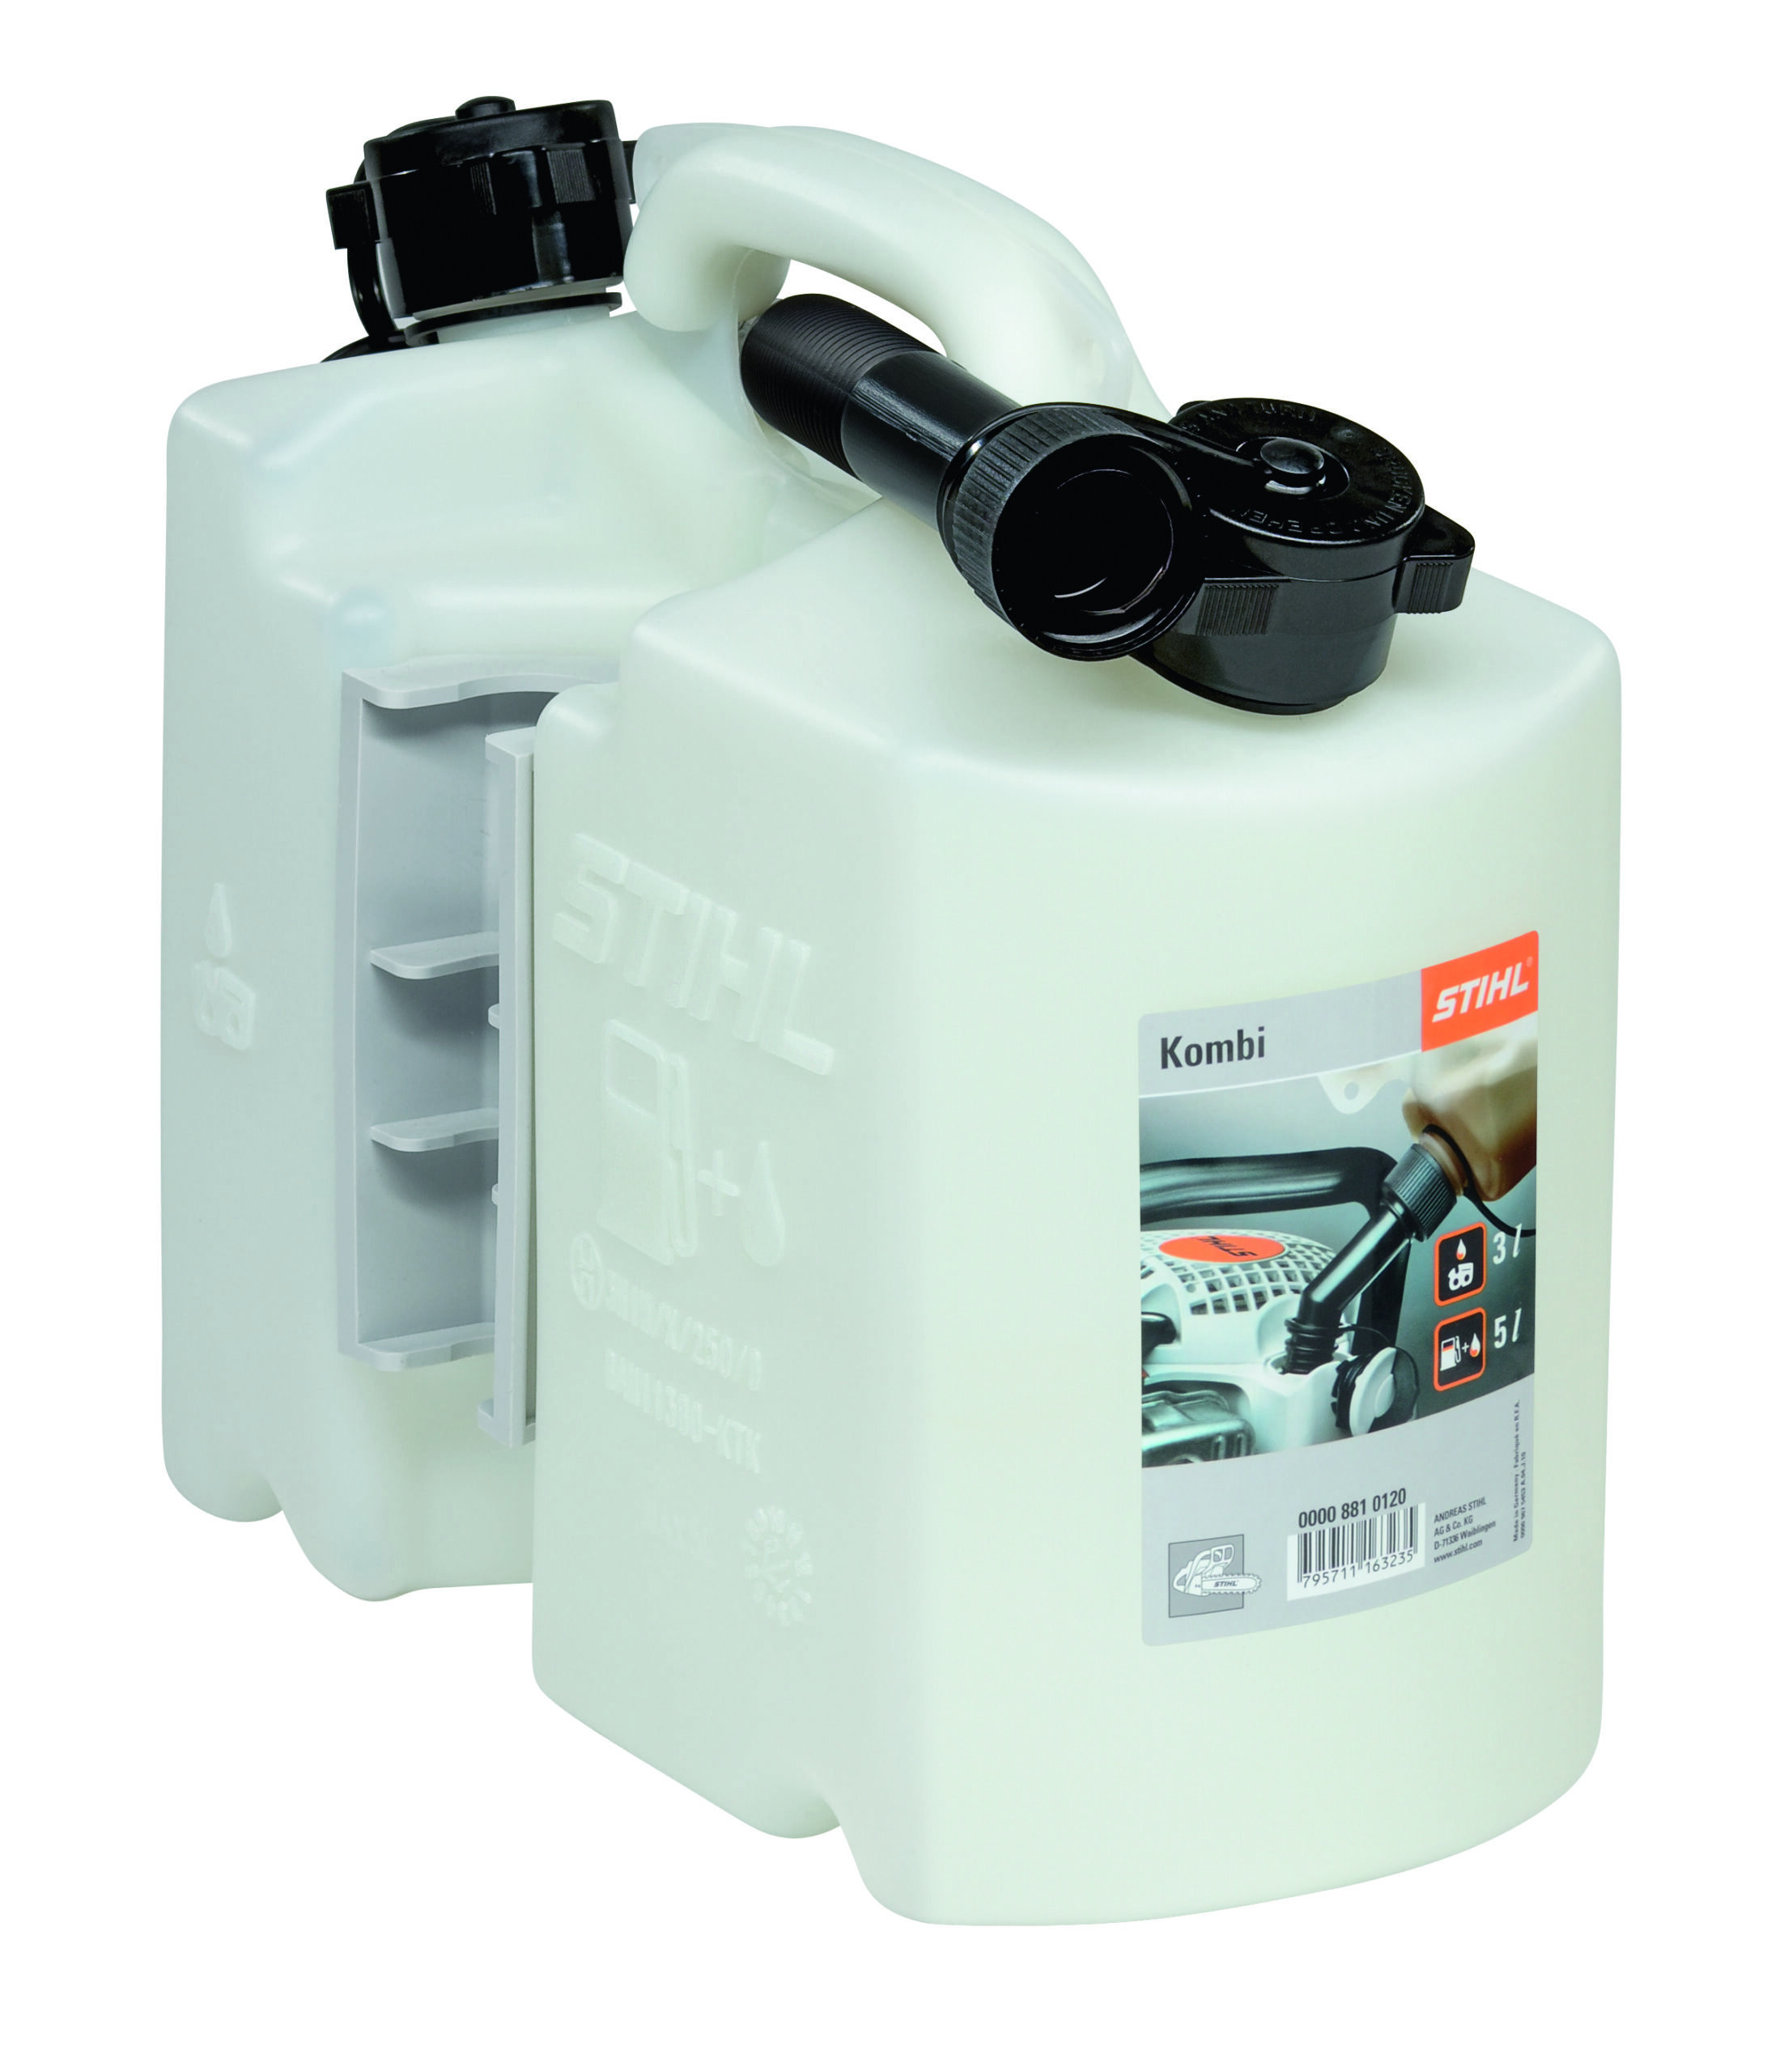 Stihl clear combi oil/fuel can